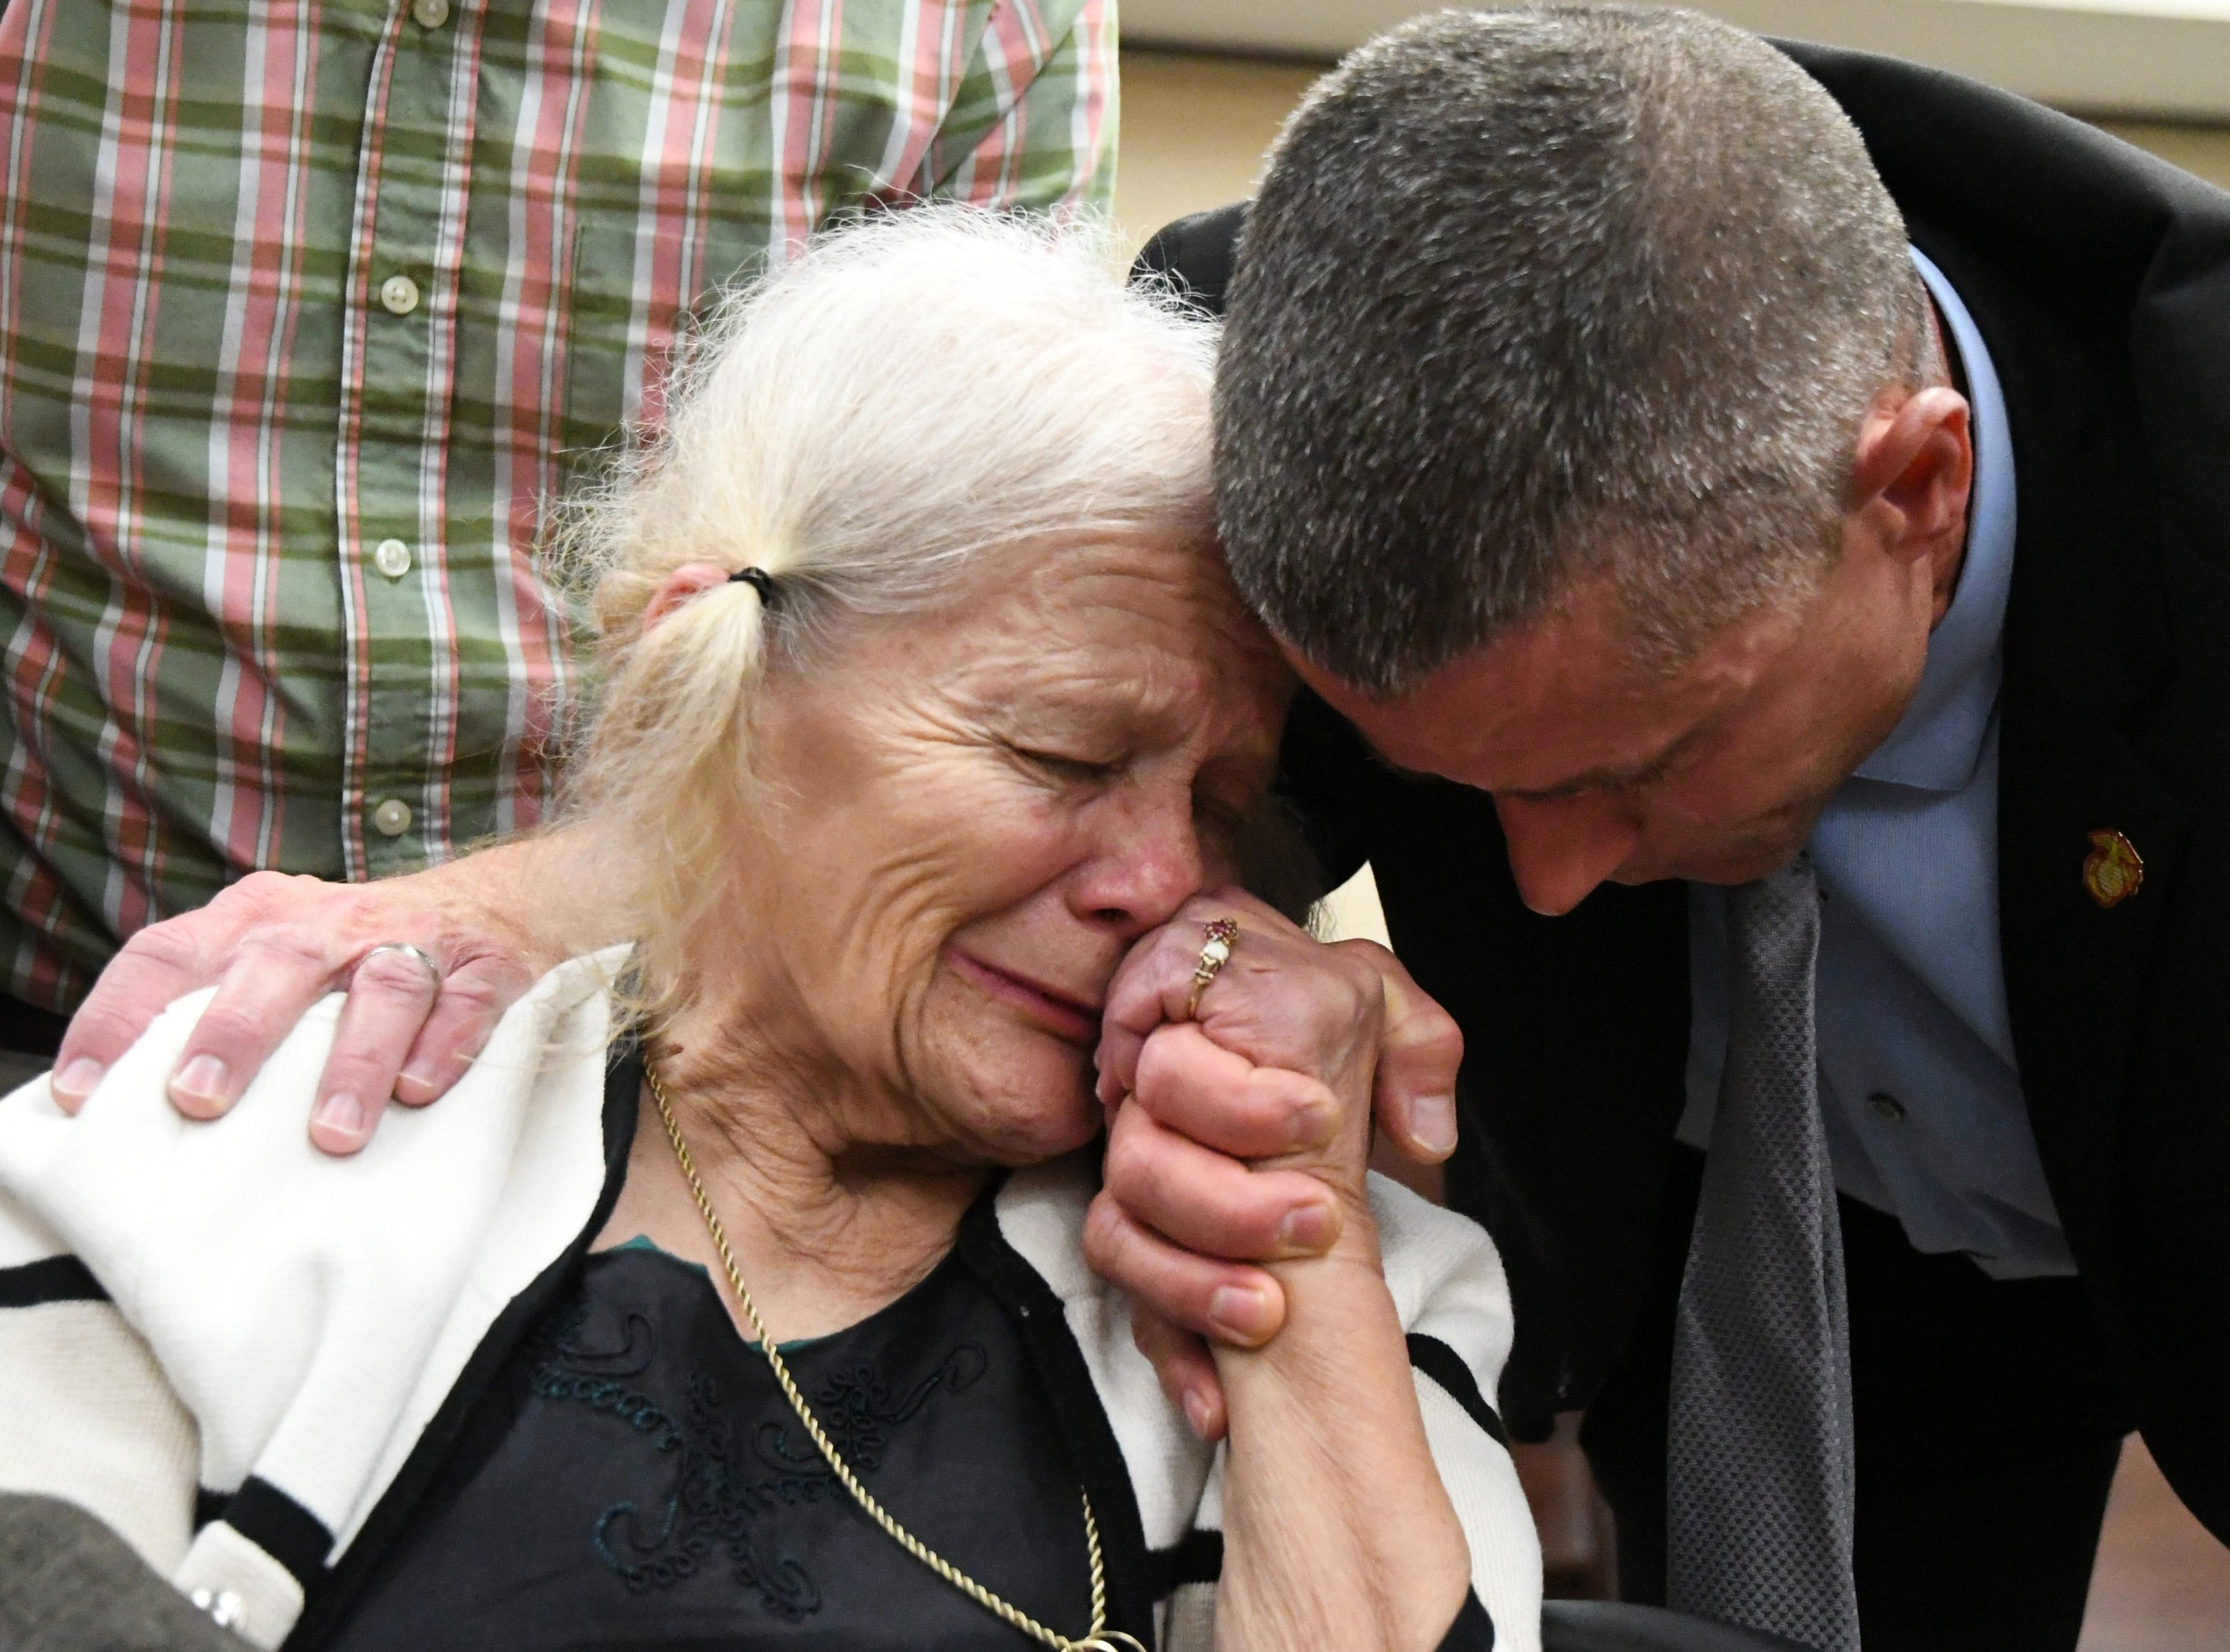 Cheryl Williams, left, mother of Mike Williams, the man who was shot and killed by his best friend Brian Winchester, 18 years ago, along side family friend Josey Visnovske, cry tears of joy for a the guilty verdicts in the trial against Denise Williams, Mike's former wife, Friday, Dec. 14, 2018. Denise and Winchester had a three year affair, during which the two conspired to kill Mike. Winchester pushed Williams overboard a boat, shot and killed him on Dec. 16, 2000.